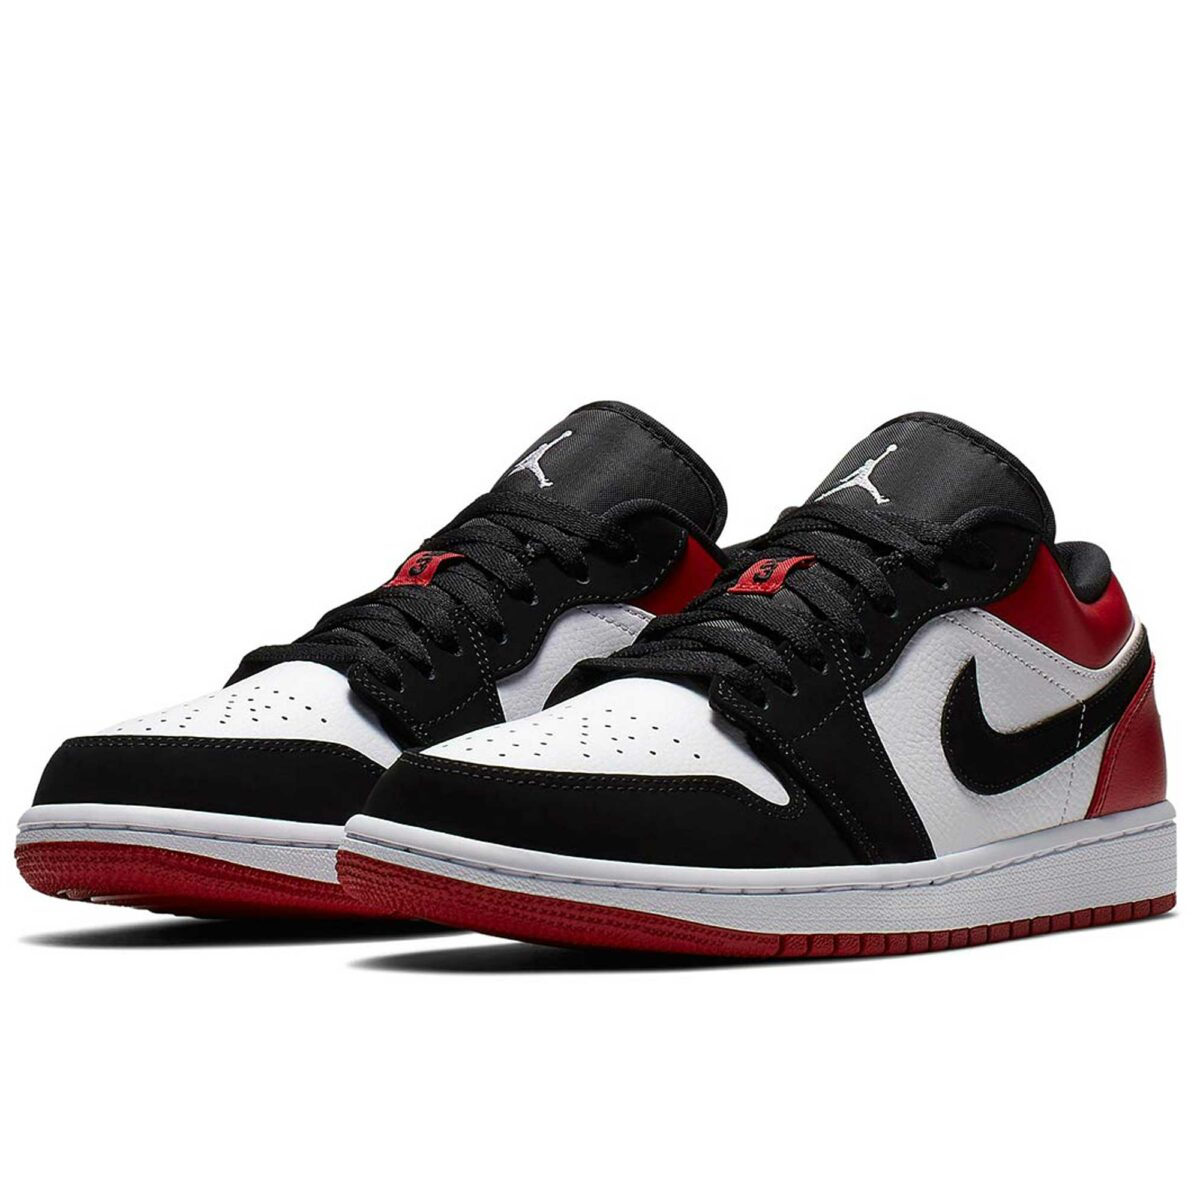 nike air Jordan 1 retro low black toe 553558_116 купить